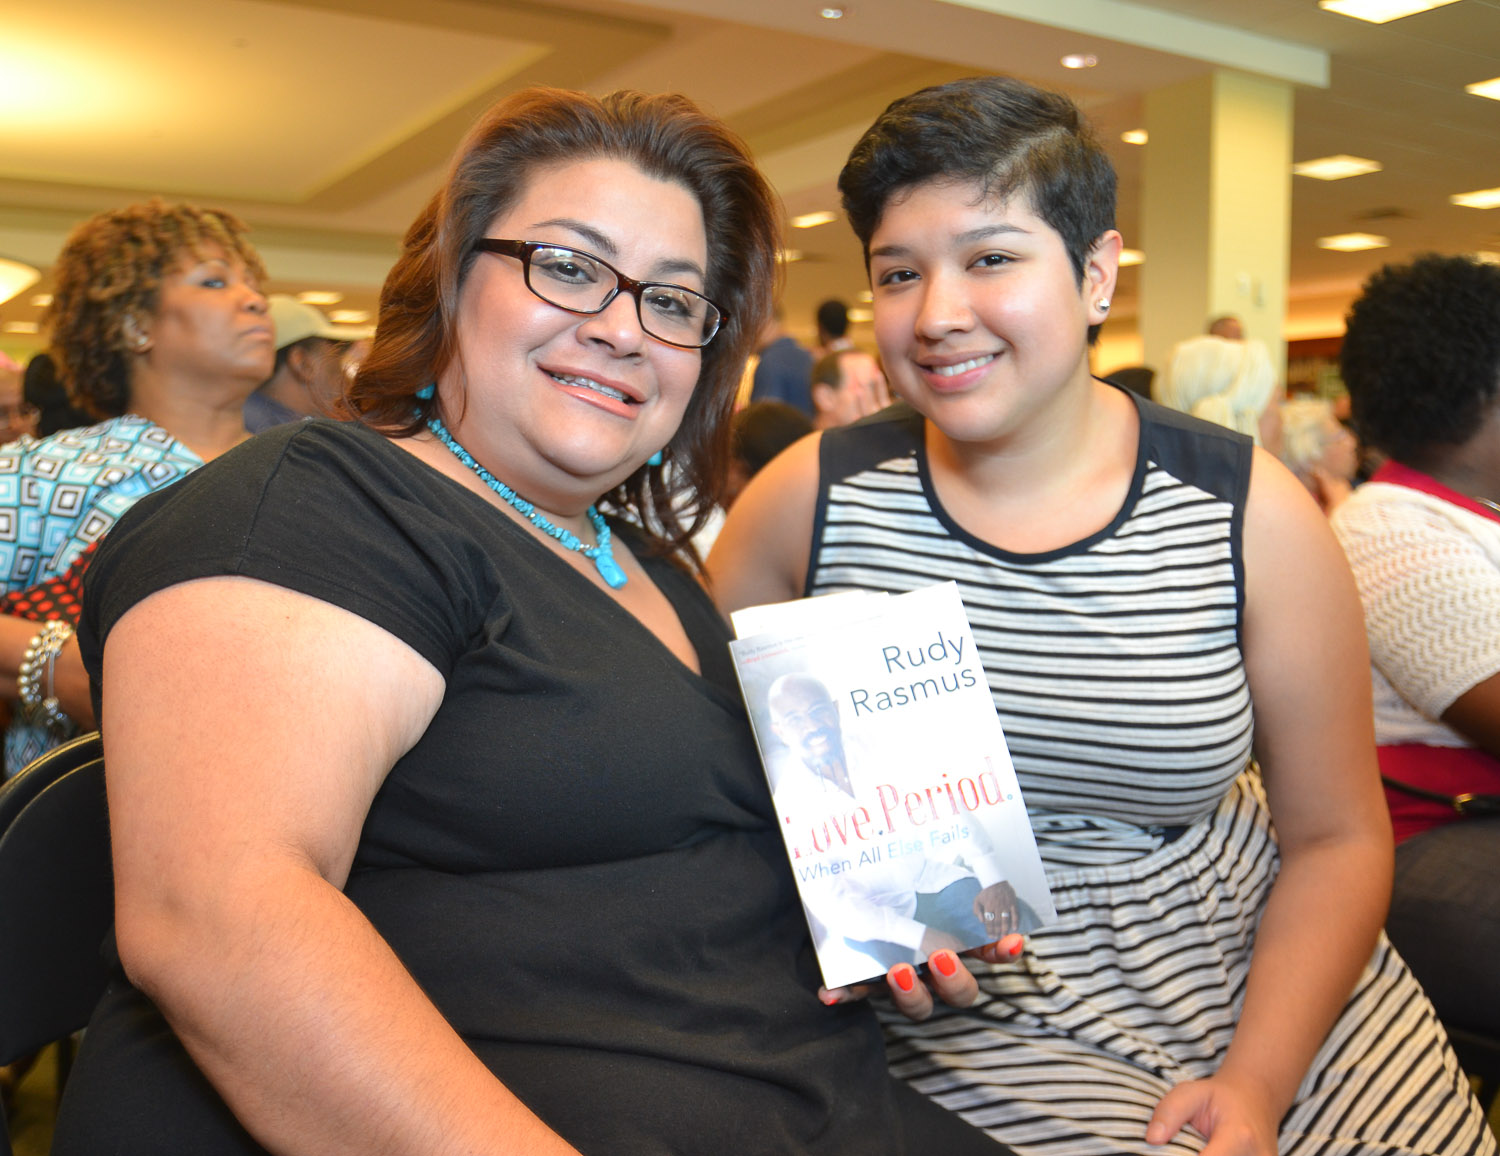 Paster Rudy book signing -0044.jpg